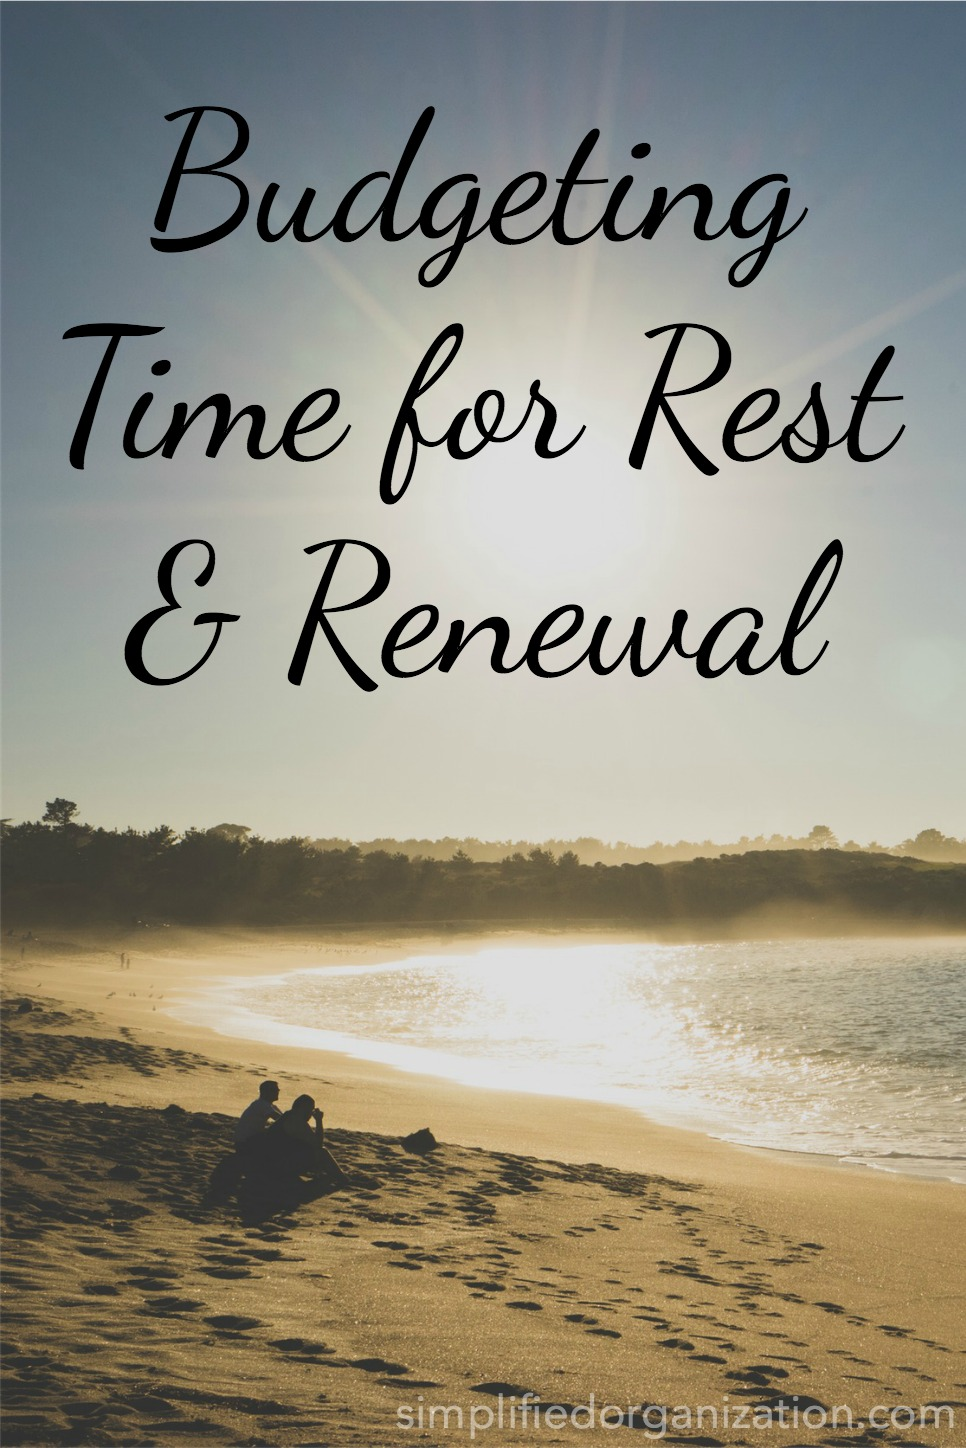 moms need time for rest and renewal